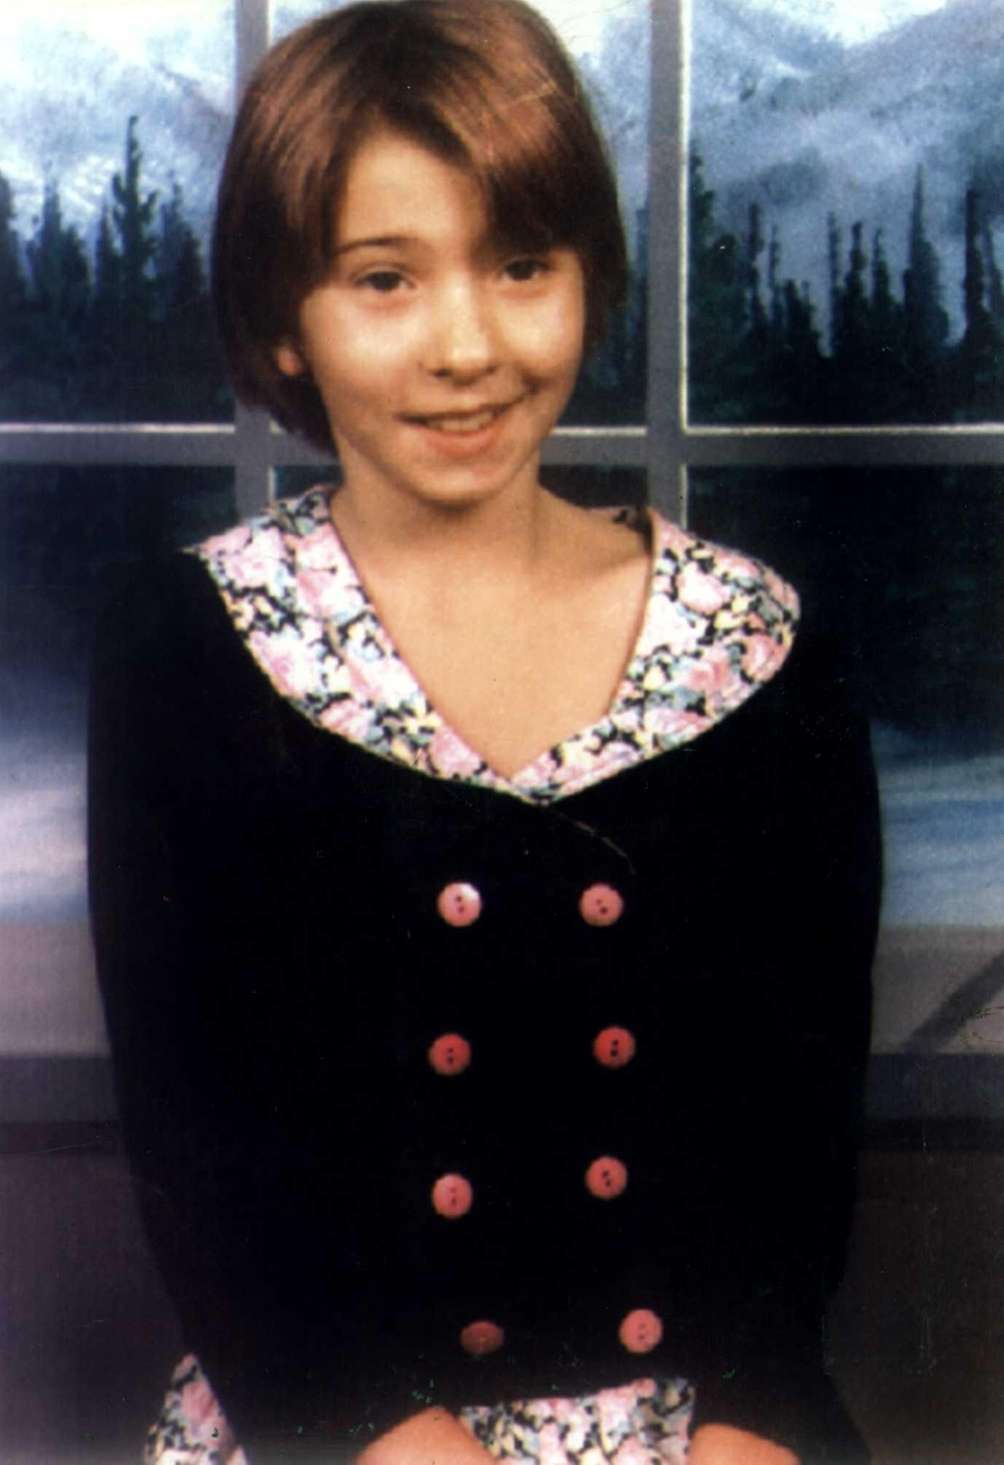 Undated photo of Katie Beers at age 10.